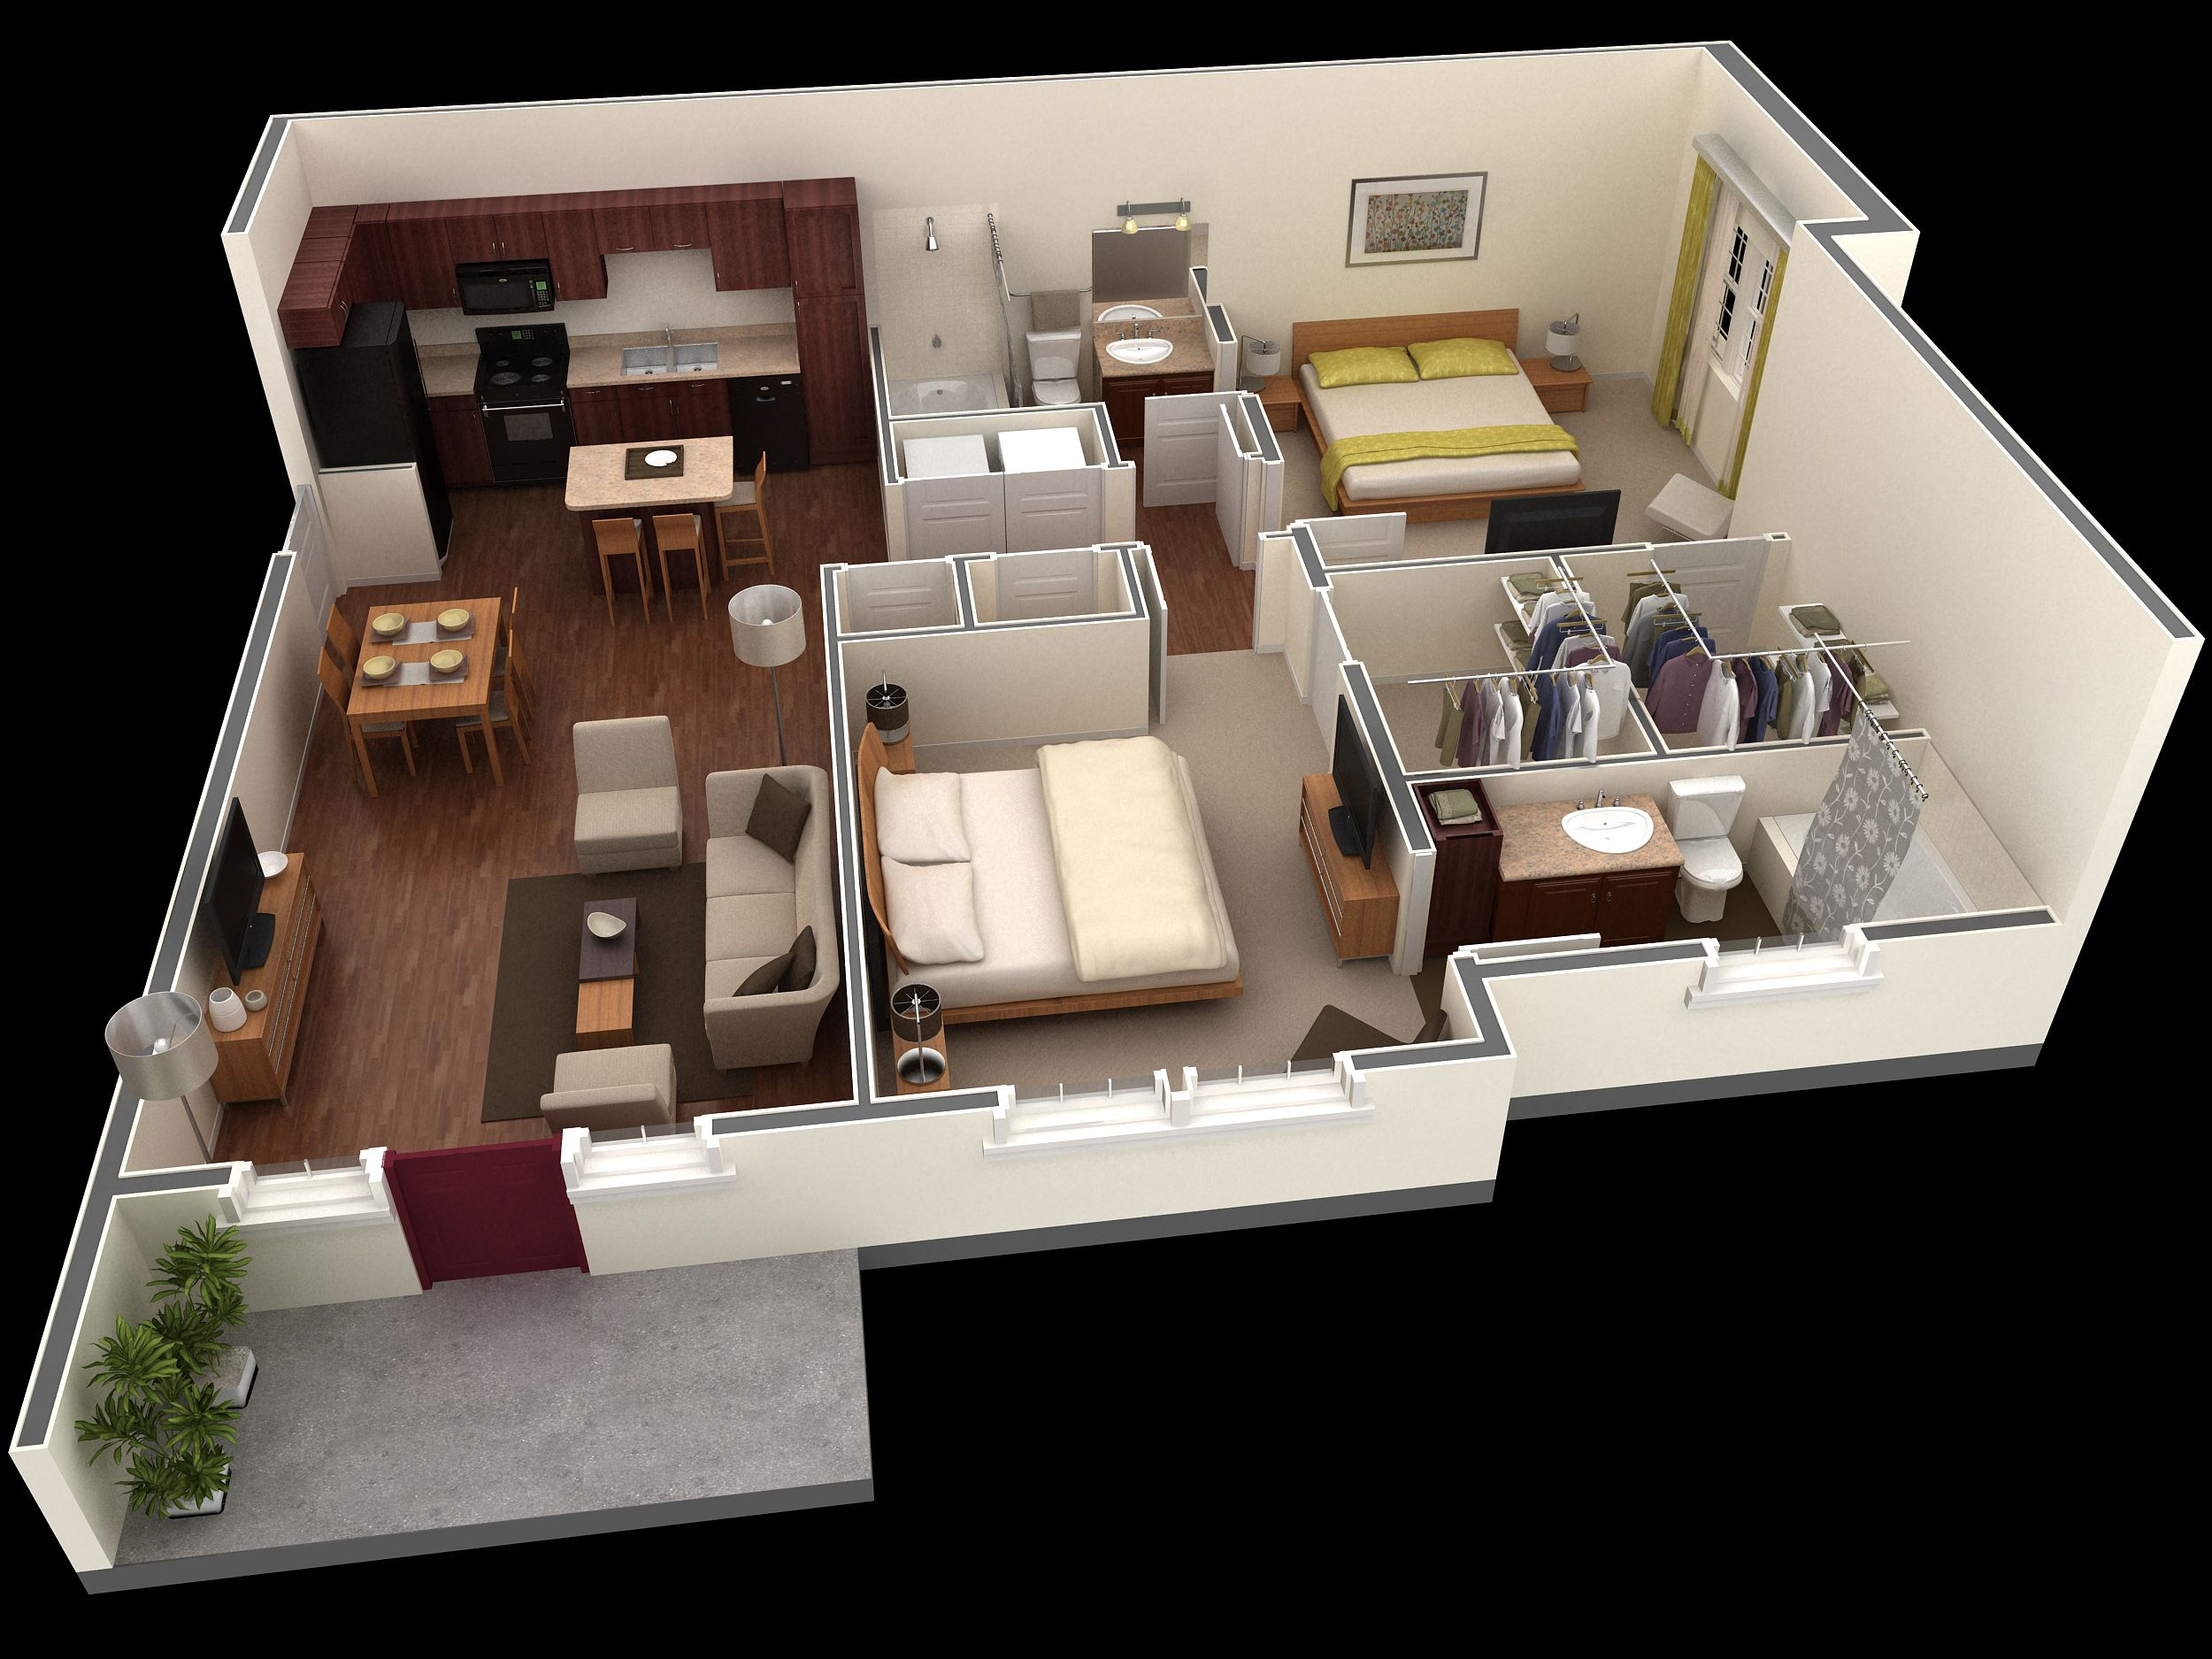 2 bedroom, 2 bath 1125 sf apartment at Springs at Legacy Commons ...